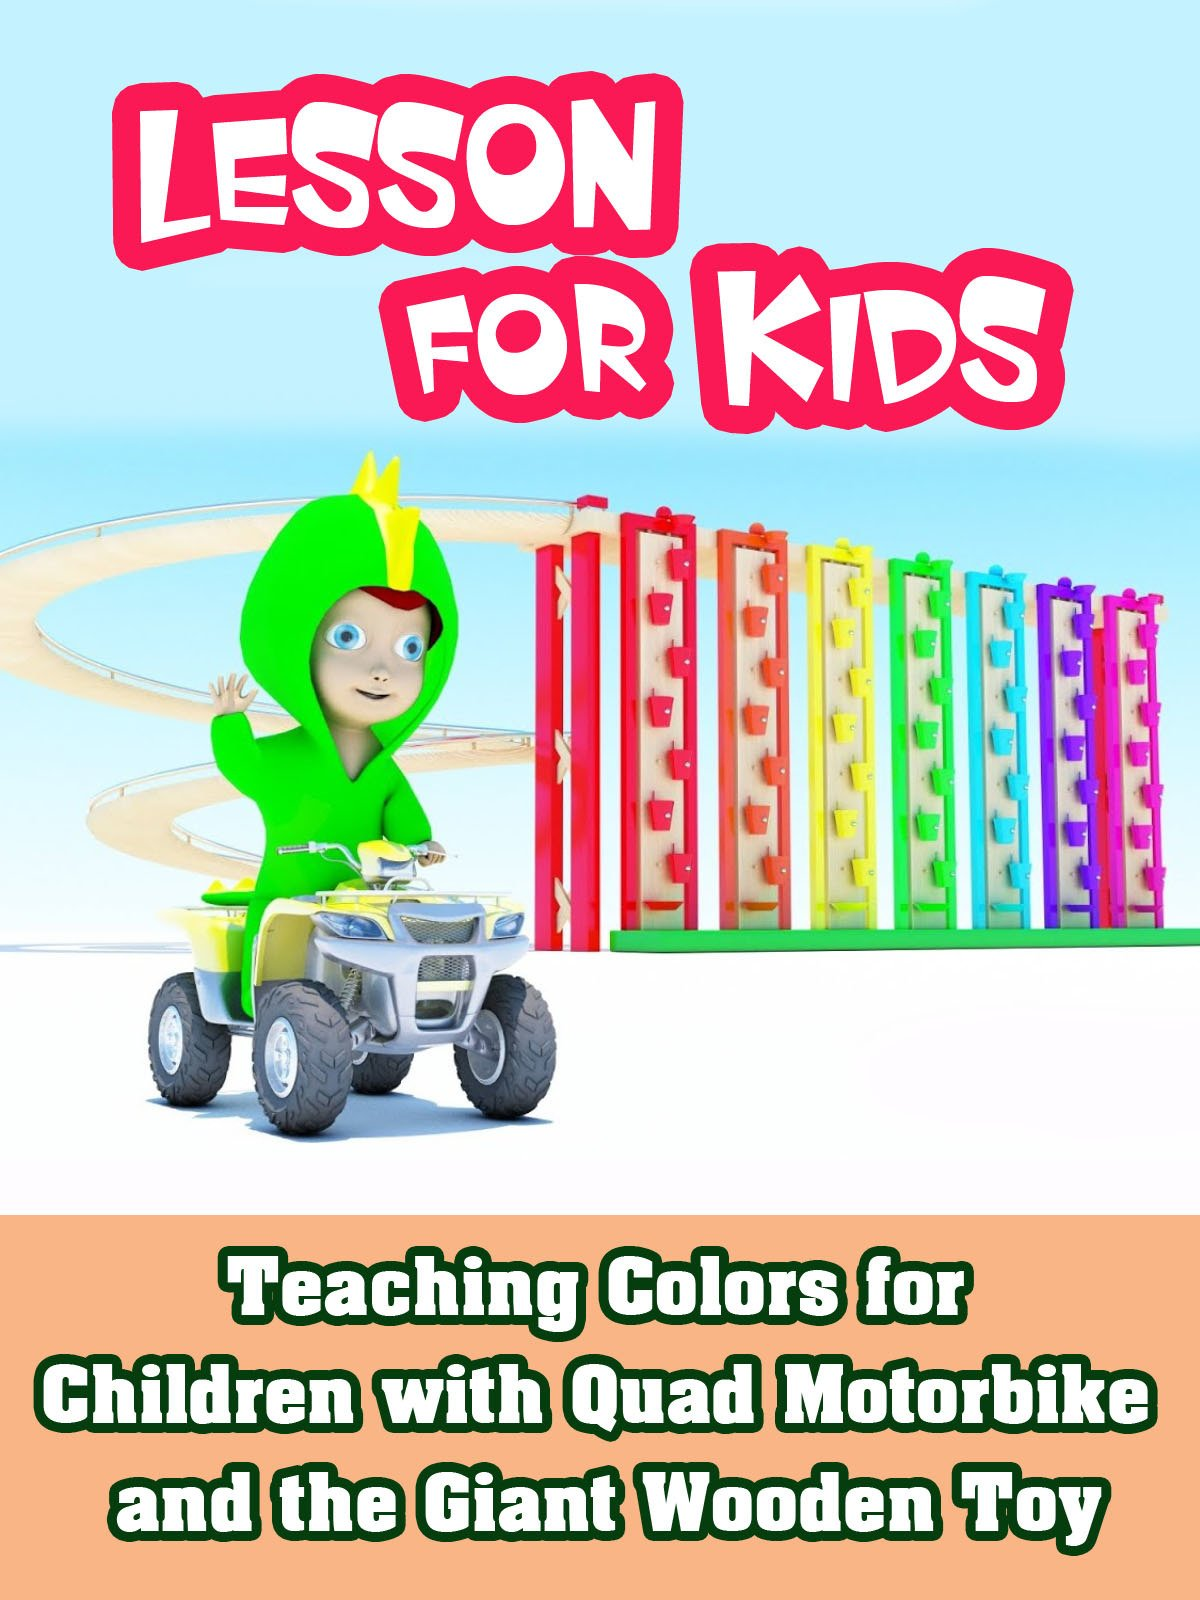 Teaching Colors for Children with Quad Motorbike and the Giant Wooden Toy